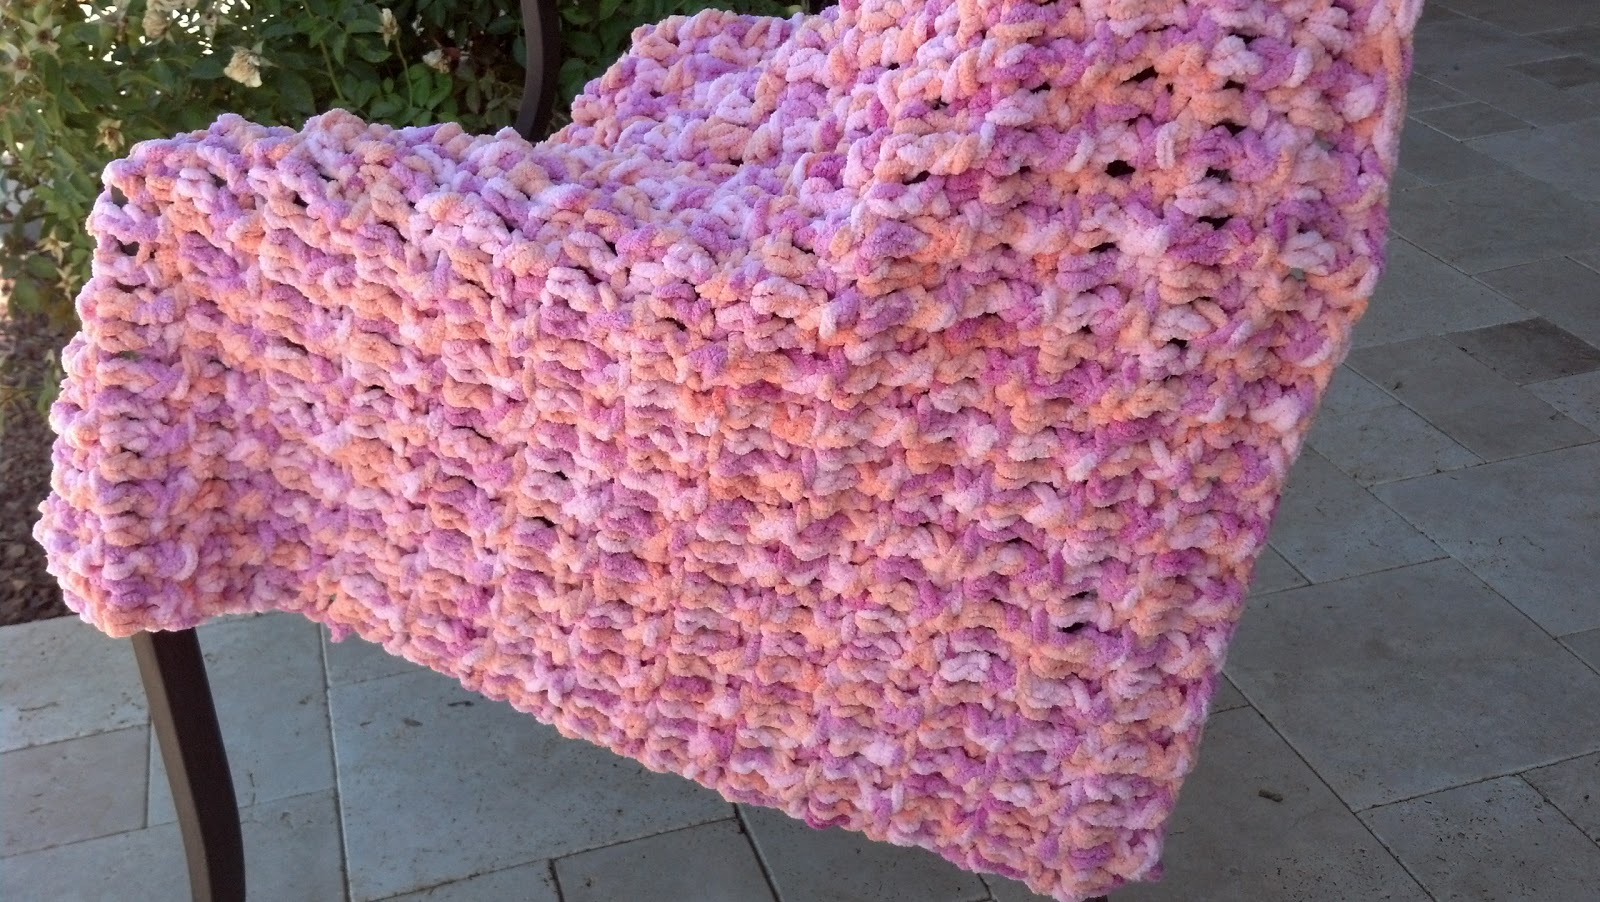 Bernat Blanket Yarn Crochet Patterns Interesting Design Ideas